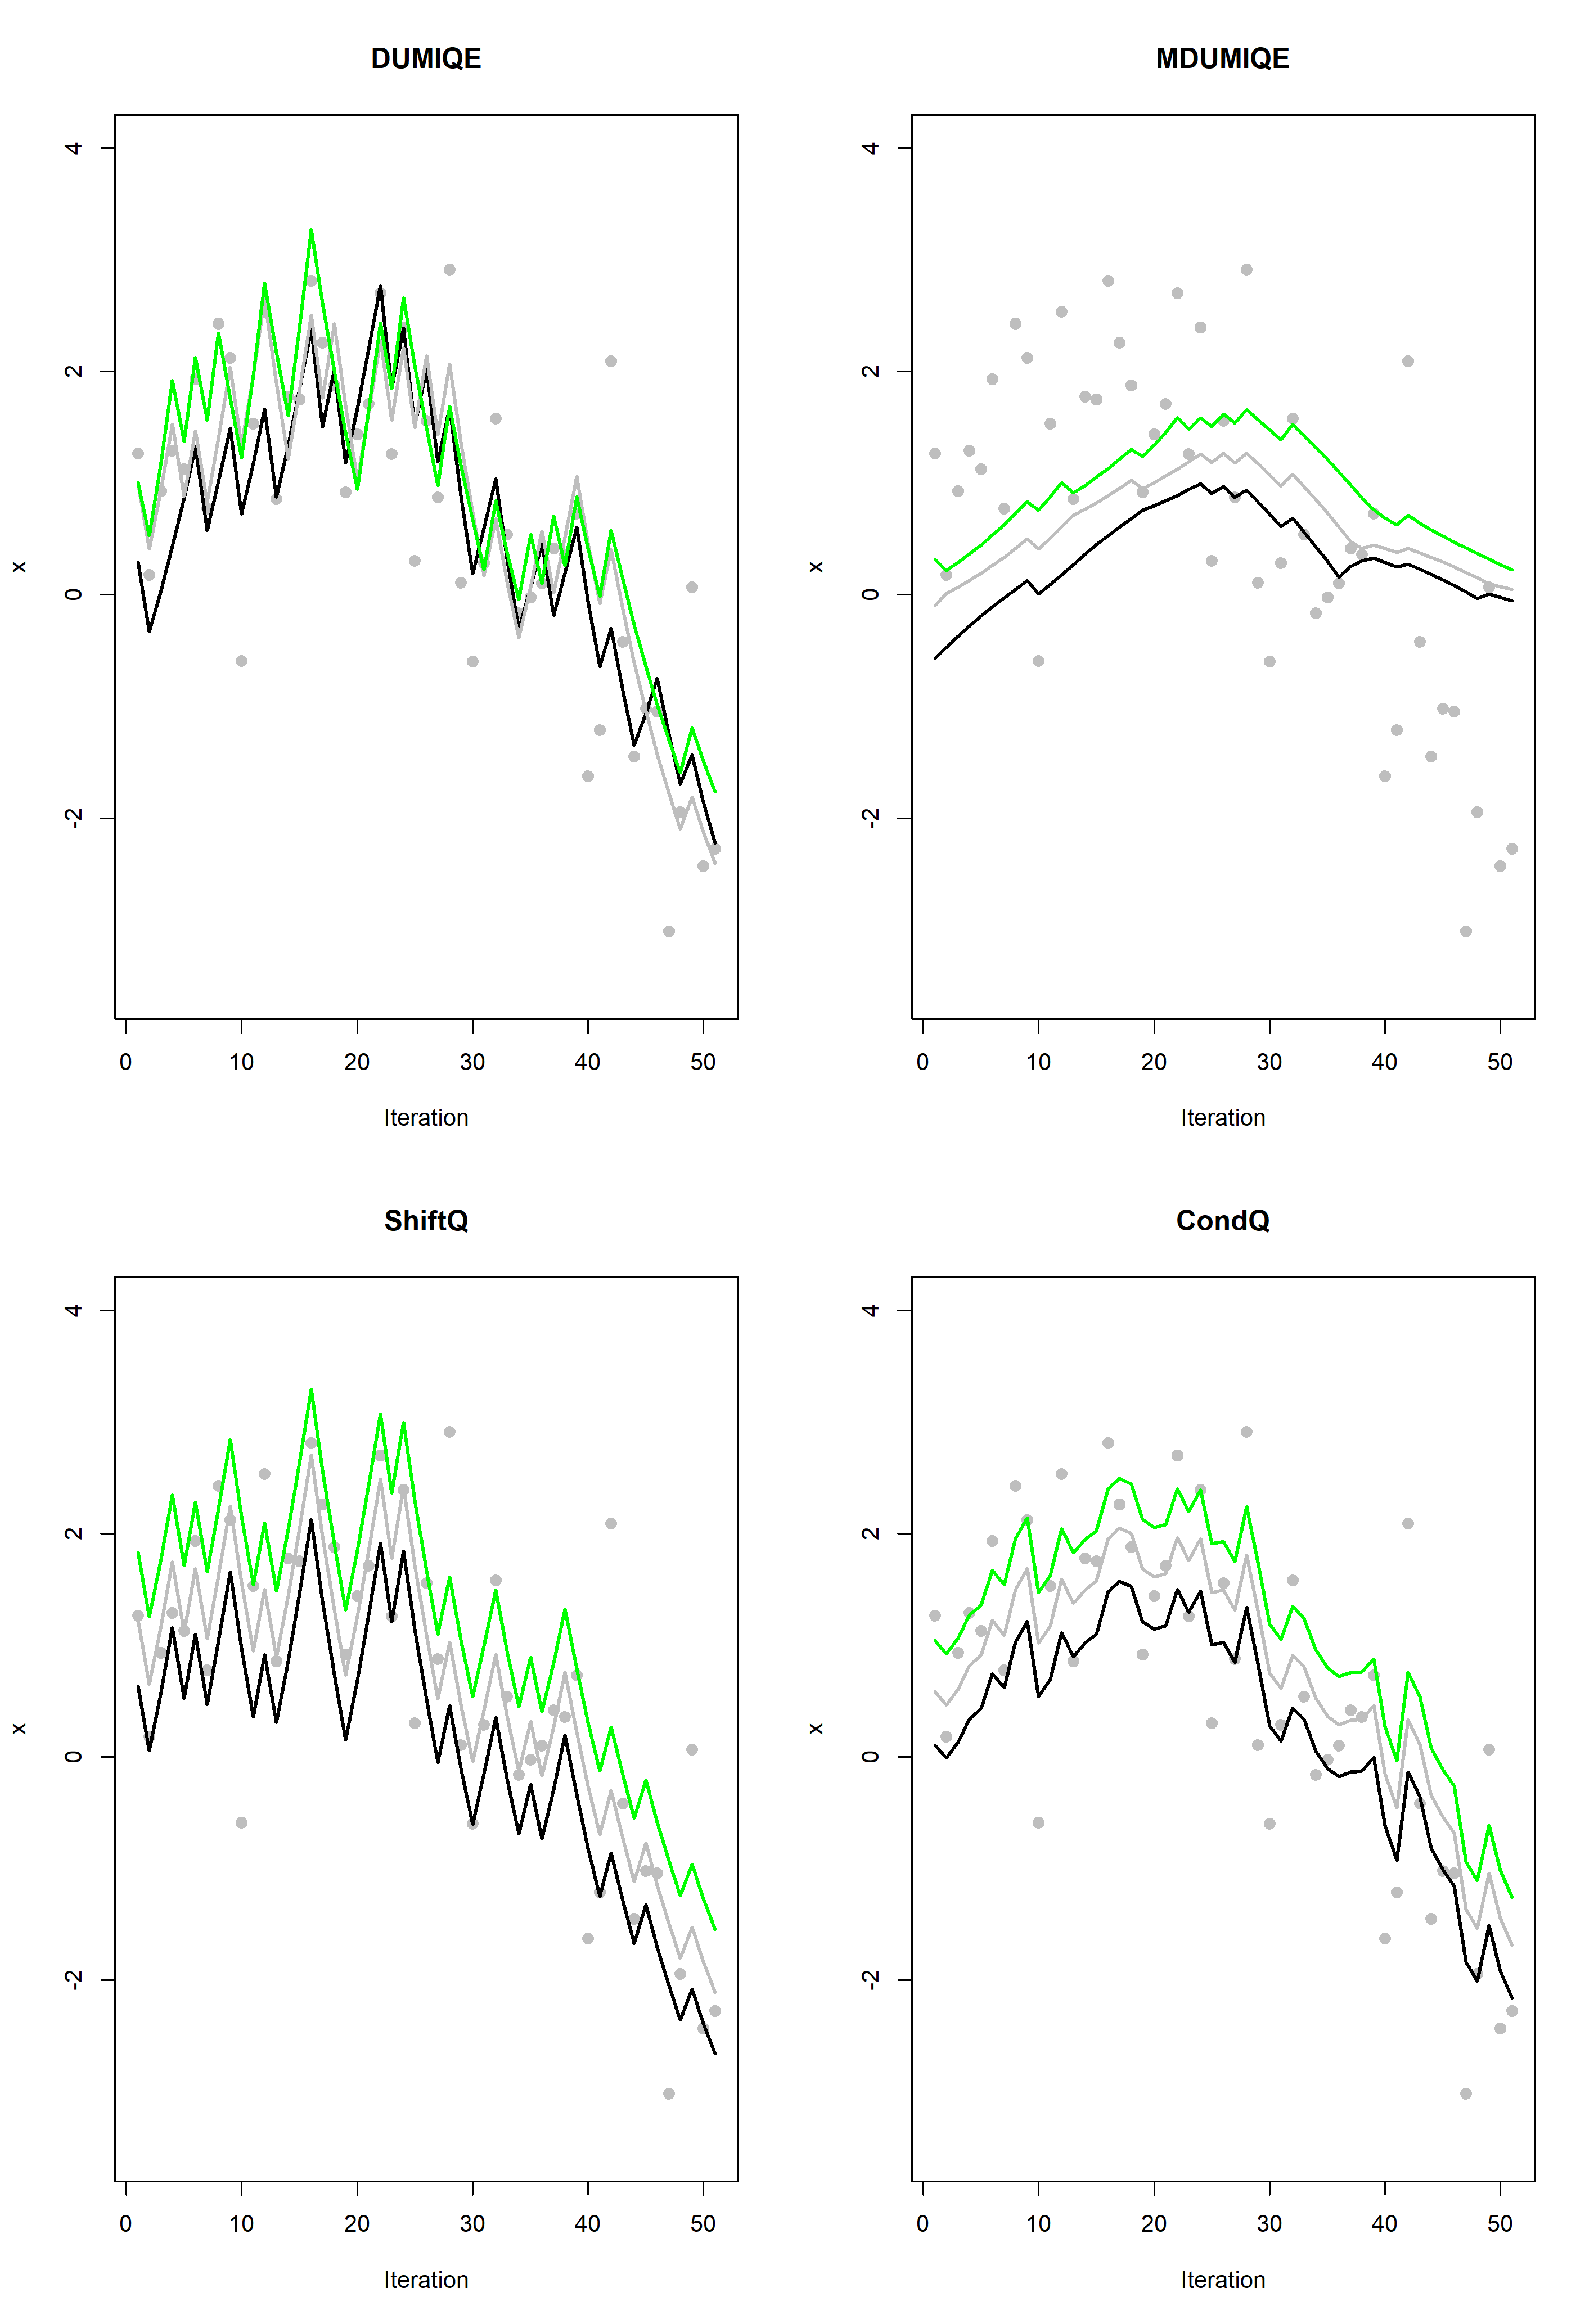 Estimation processes for DUMIQE, MDUMIQE, CondQ and ShiftQ. The gray dots show samples from the data stream distribution while the black, gray and green curves show estimates of the 0.4, 0.5 and the 0.6 quantiles of the data stream, respectively.